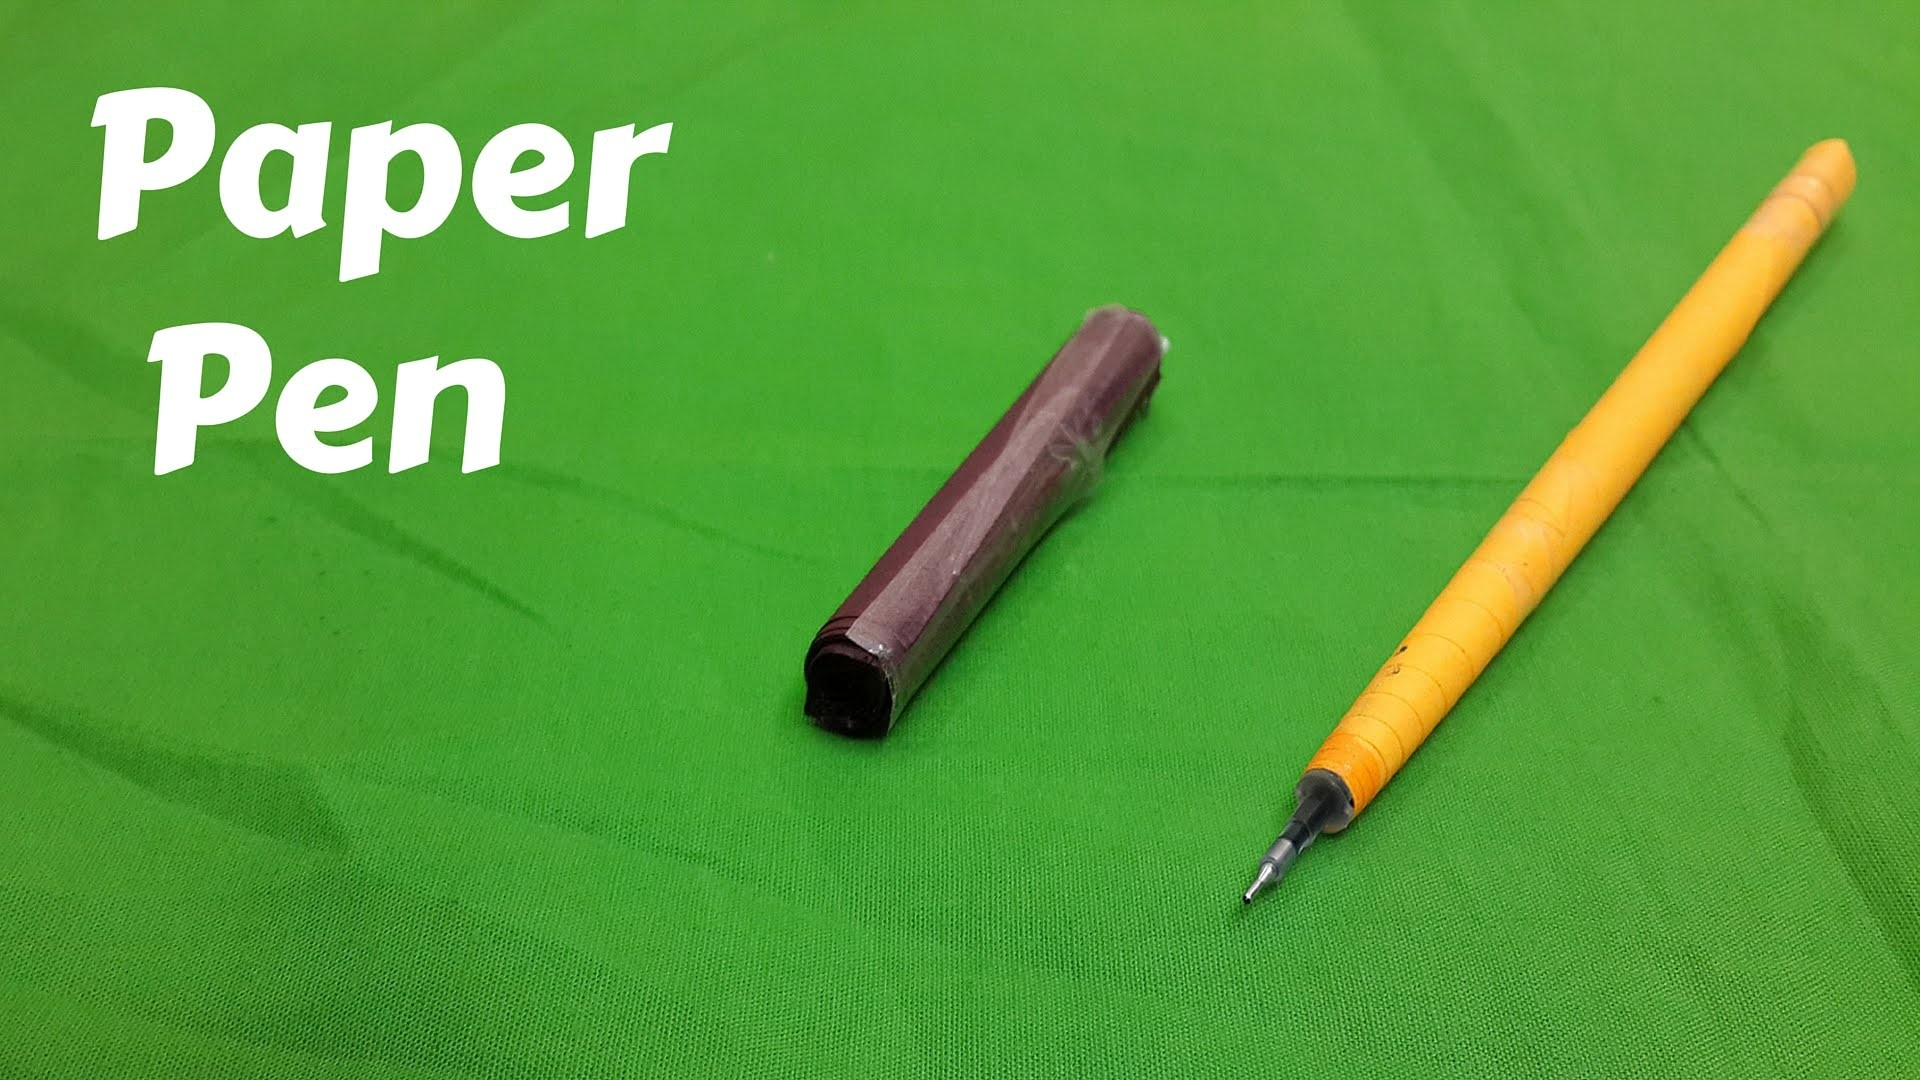 How to Make a Simple Paper Pen : DIY Craft Ideas